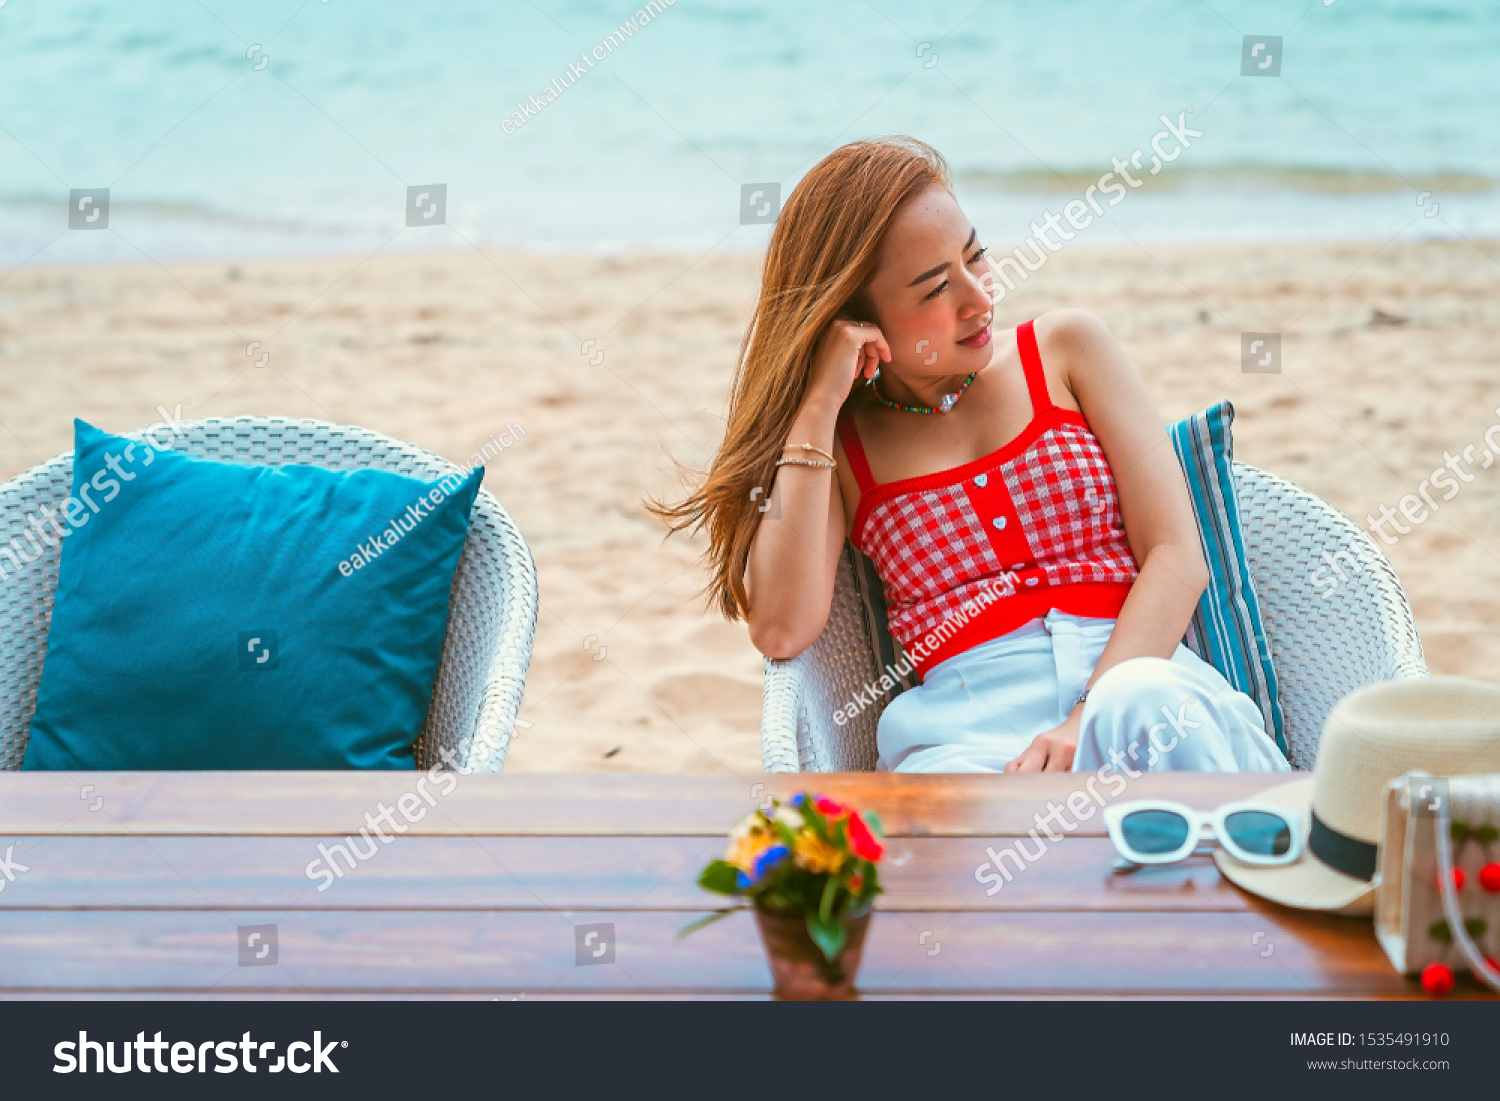 traveler girl in red dress sit on the chair in beach with vacation trip in emotional relax and smile for relax concept #1535491910